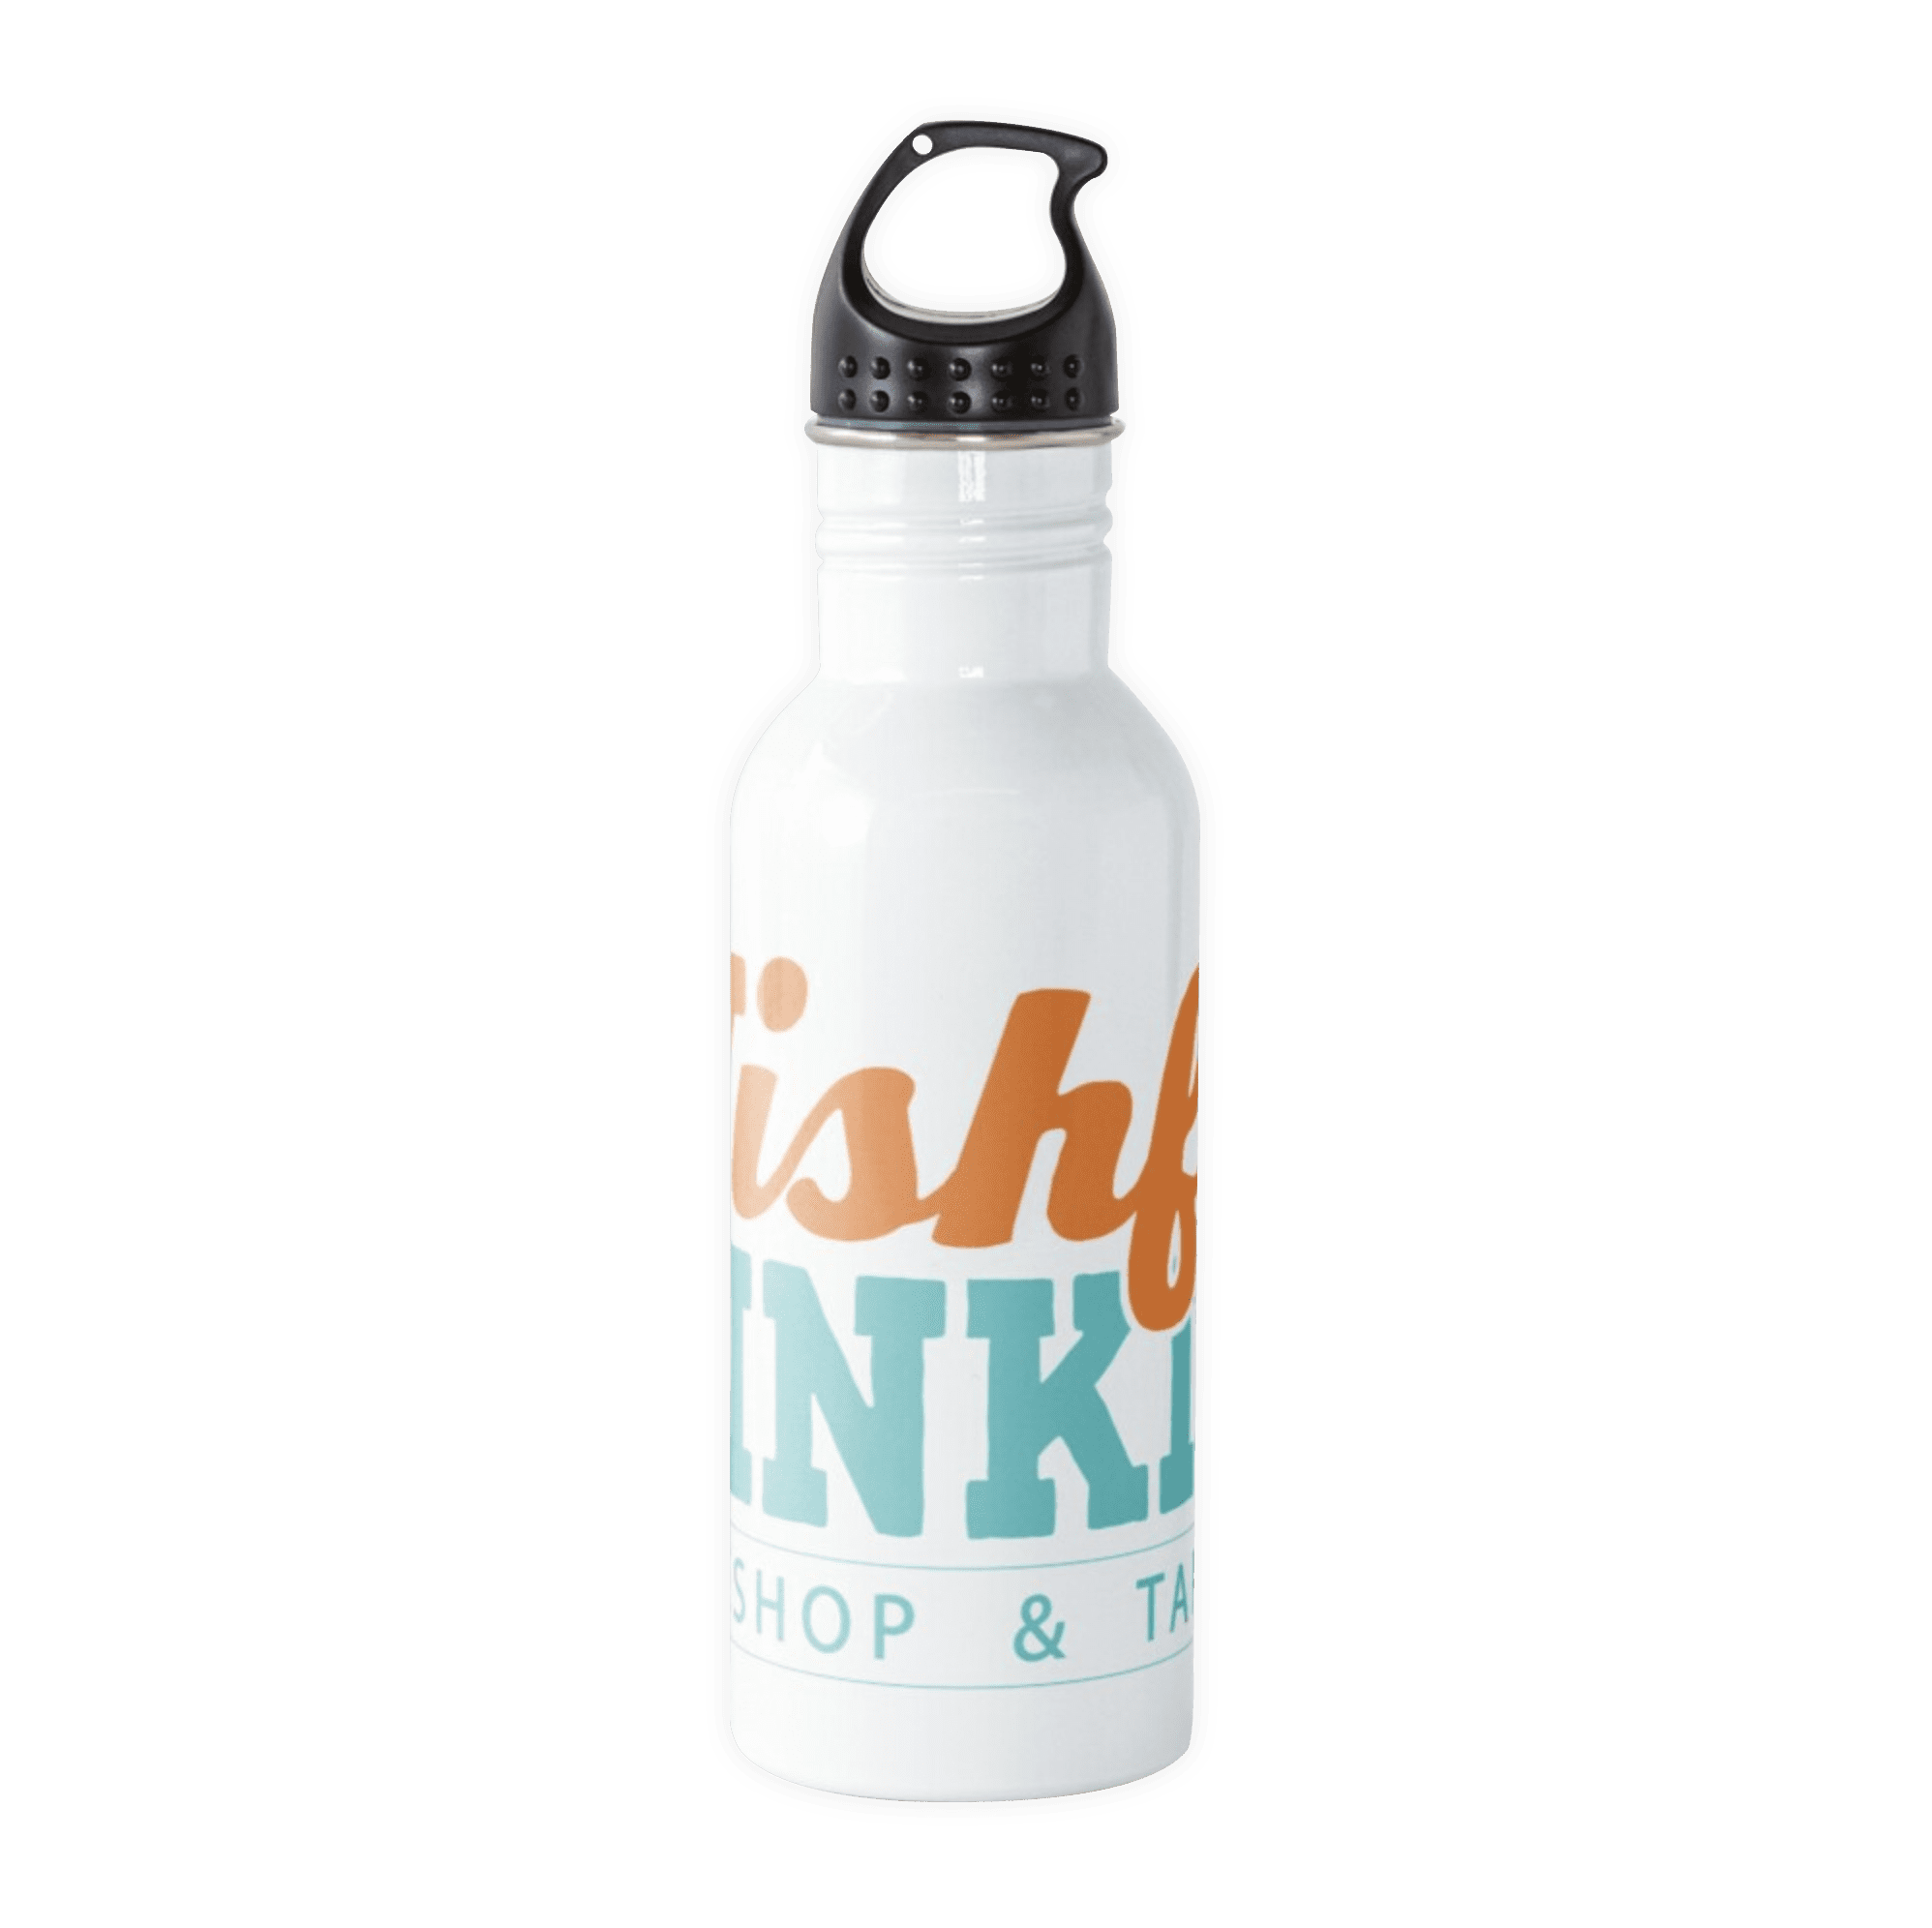 Red-bubble Merch - Bottle